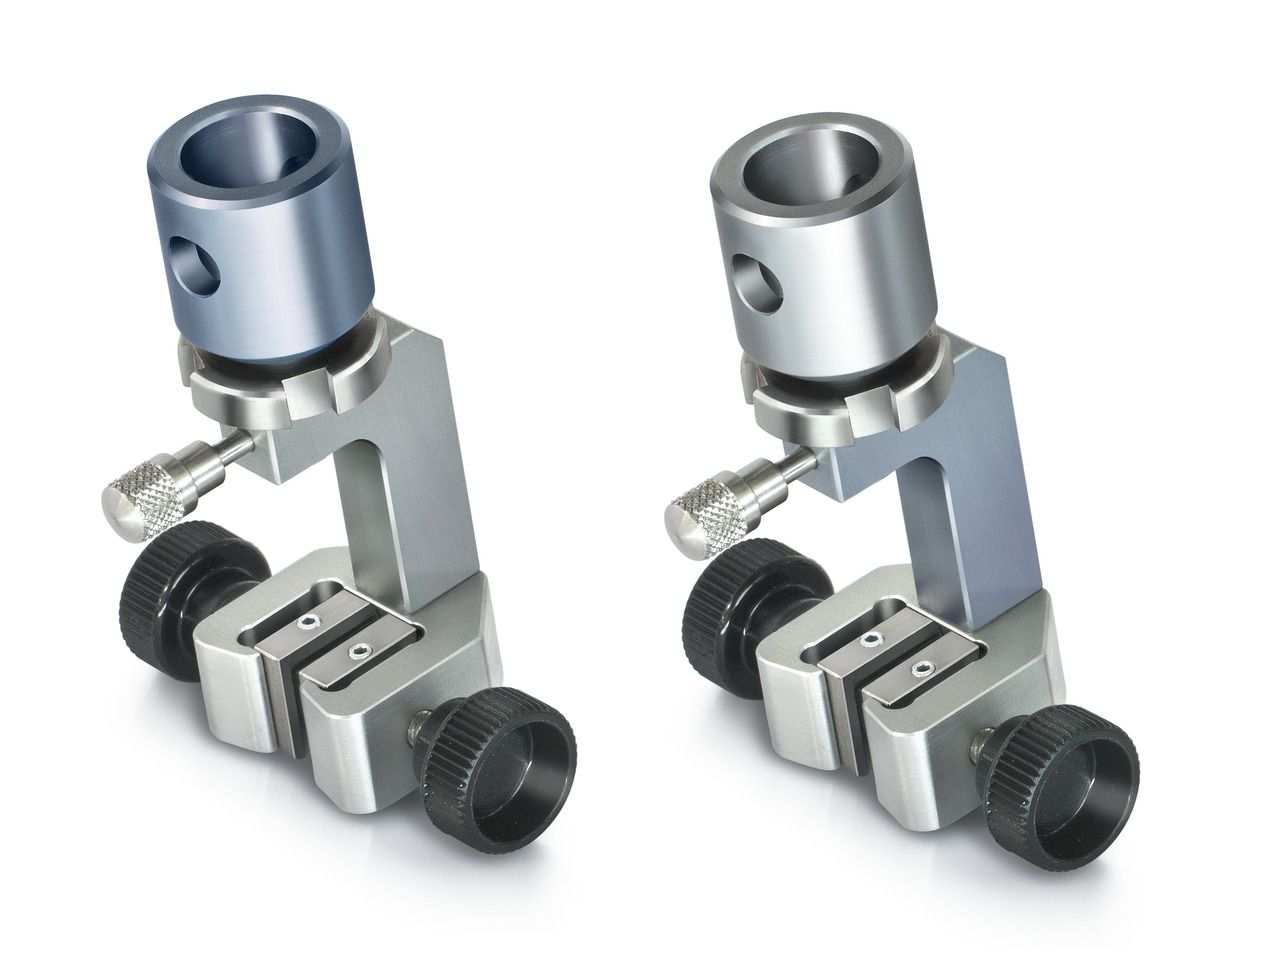 AD 9016 Screw Tension Clamp